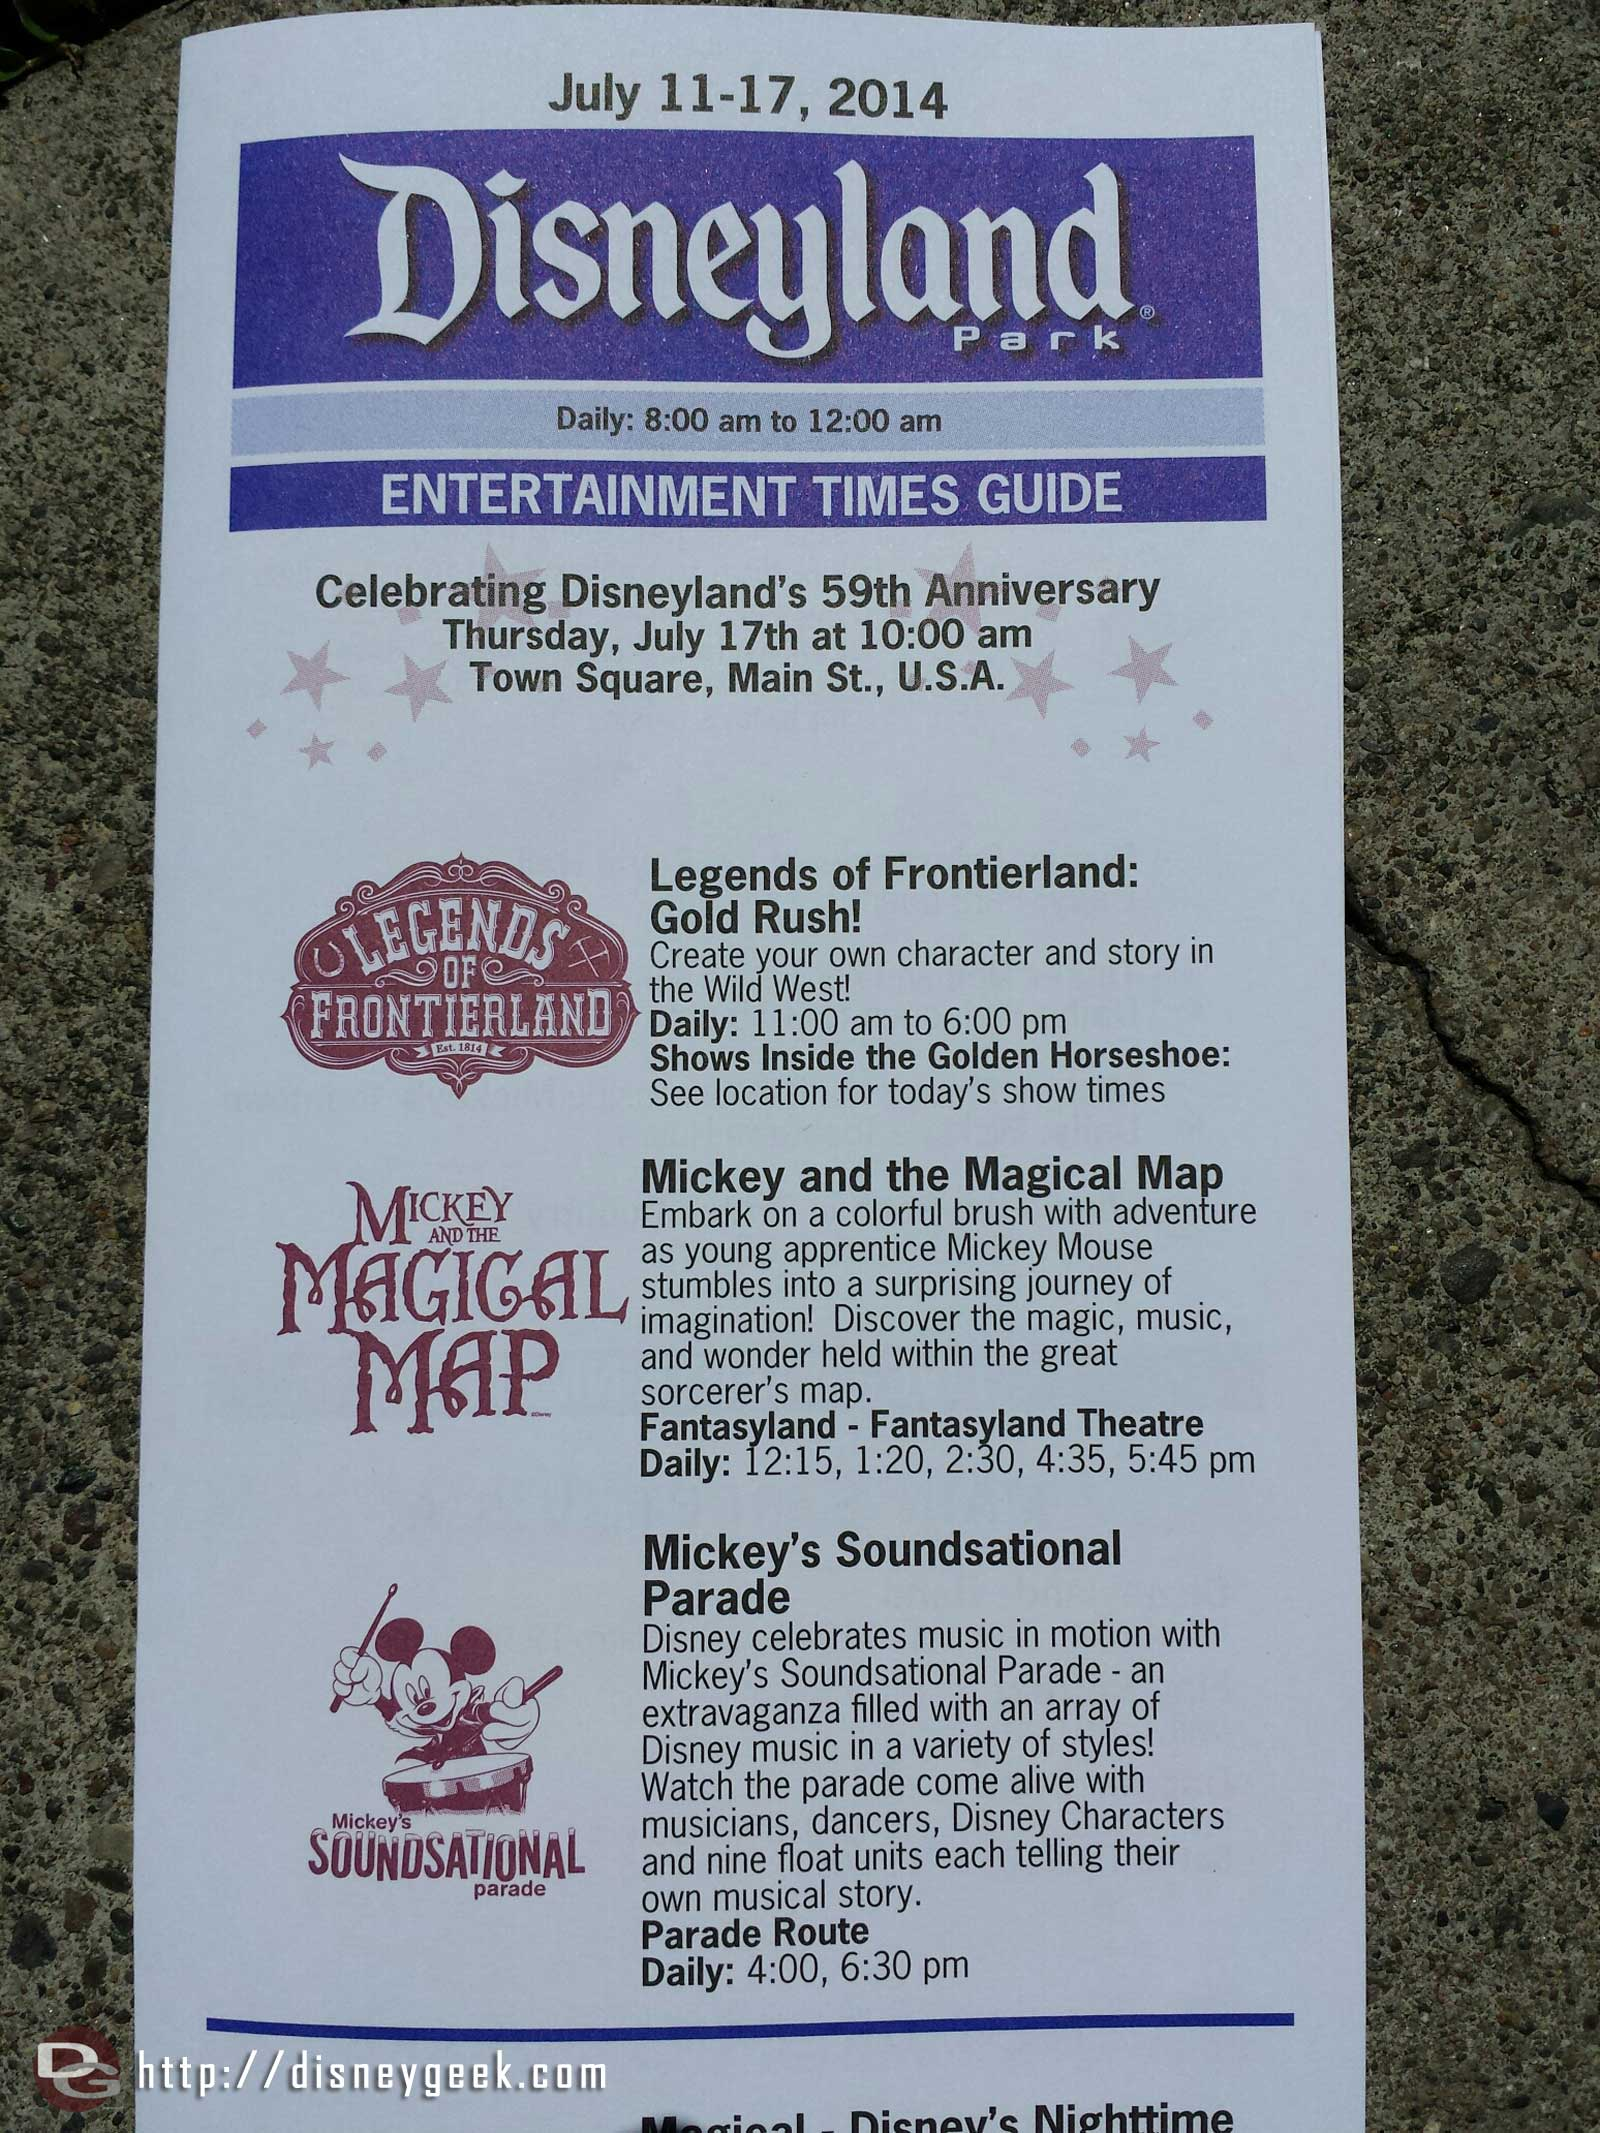 #Disneyland time guide, note the 59th celebration next week is at 10am